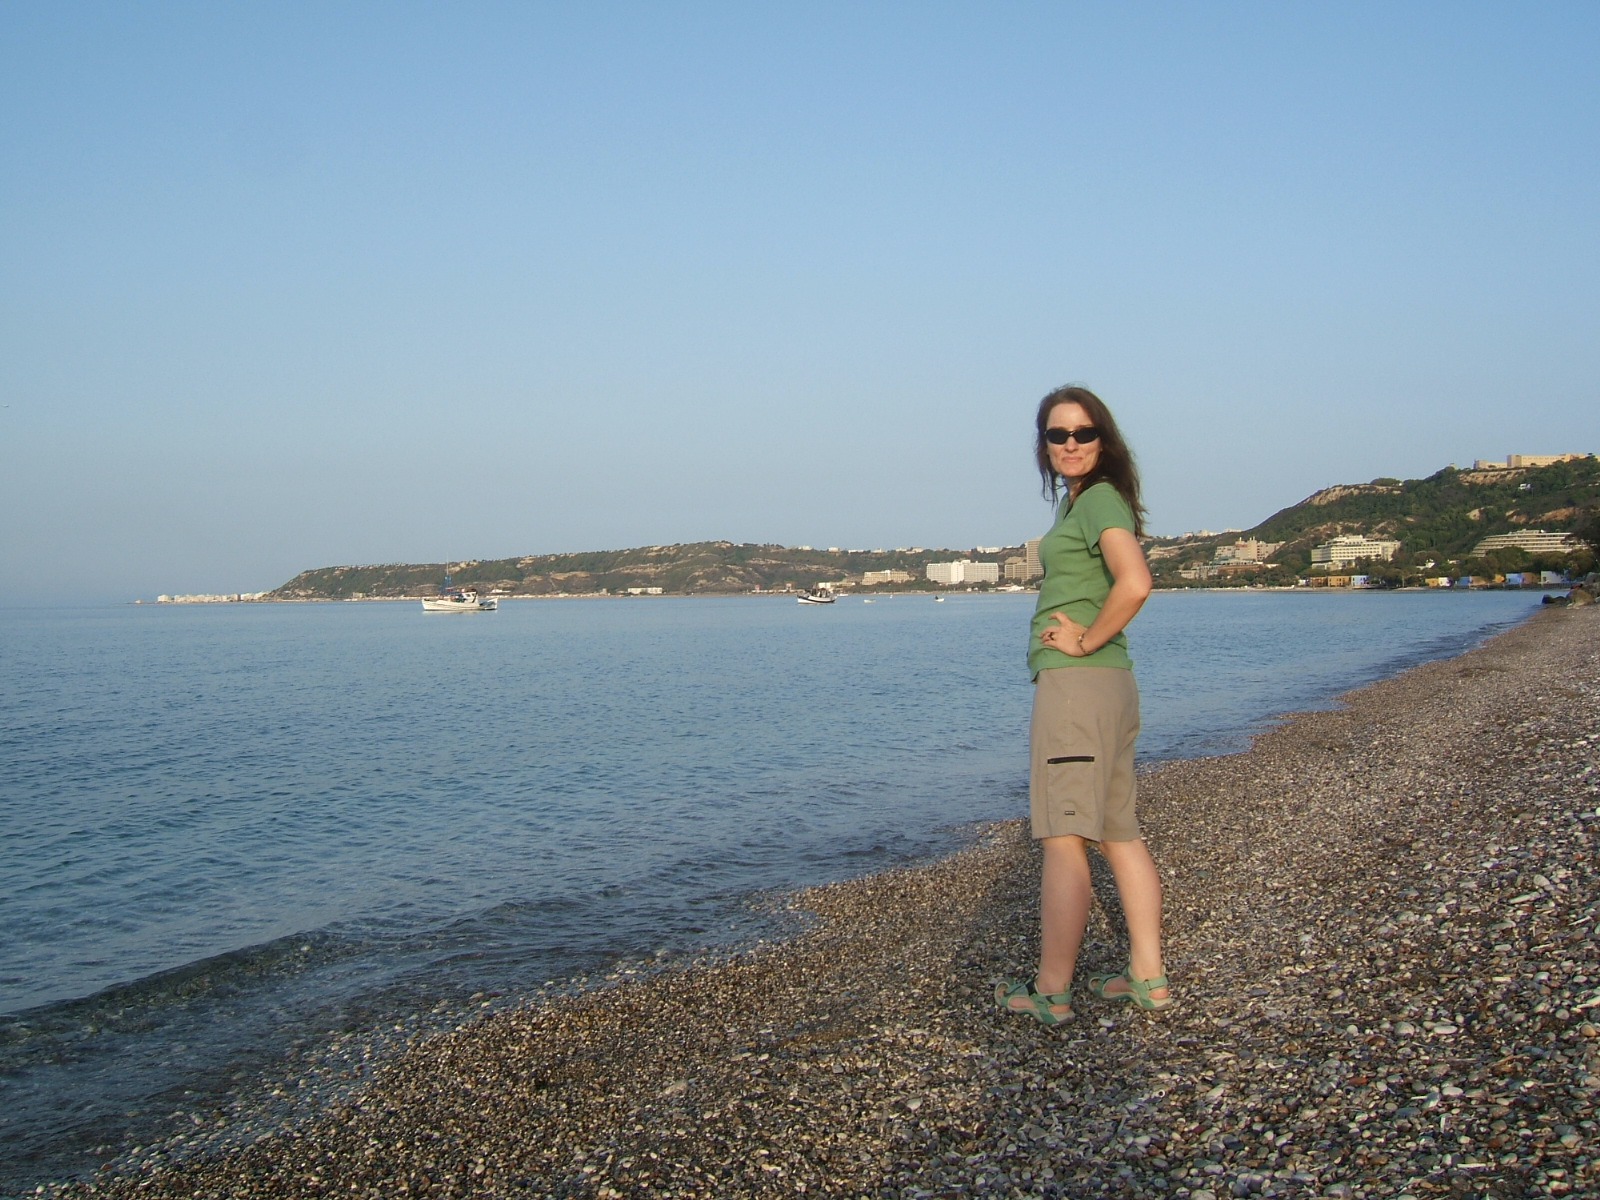 Walking along Avra beach, Rhodes, Greece. © 2008 Jeff Welter